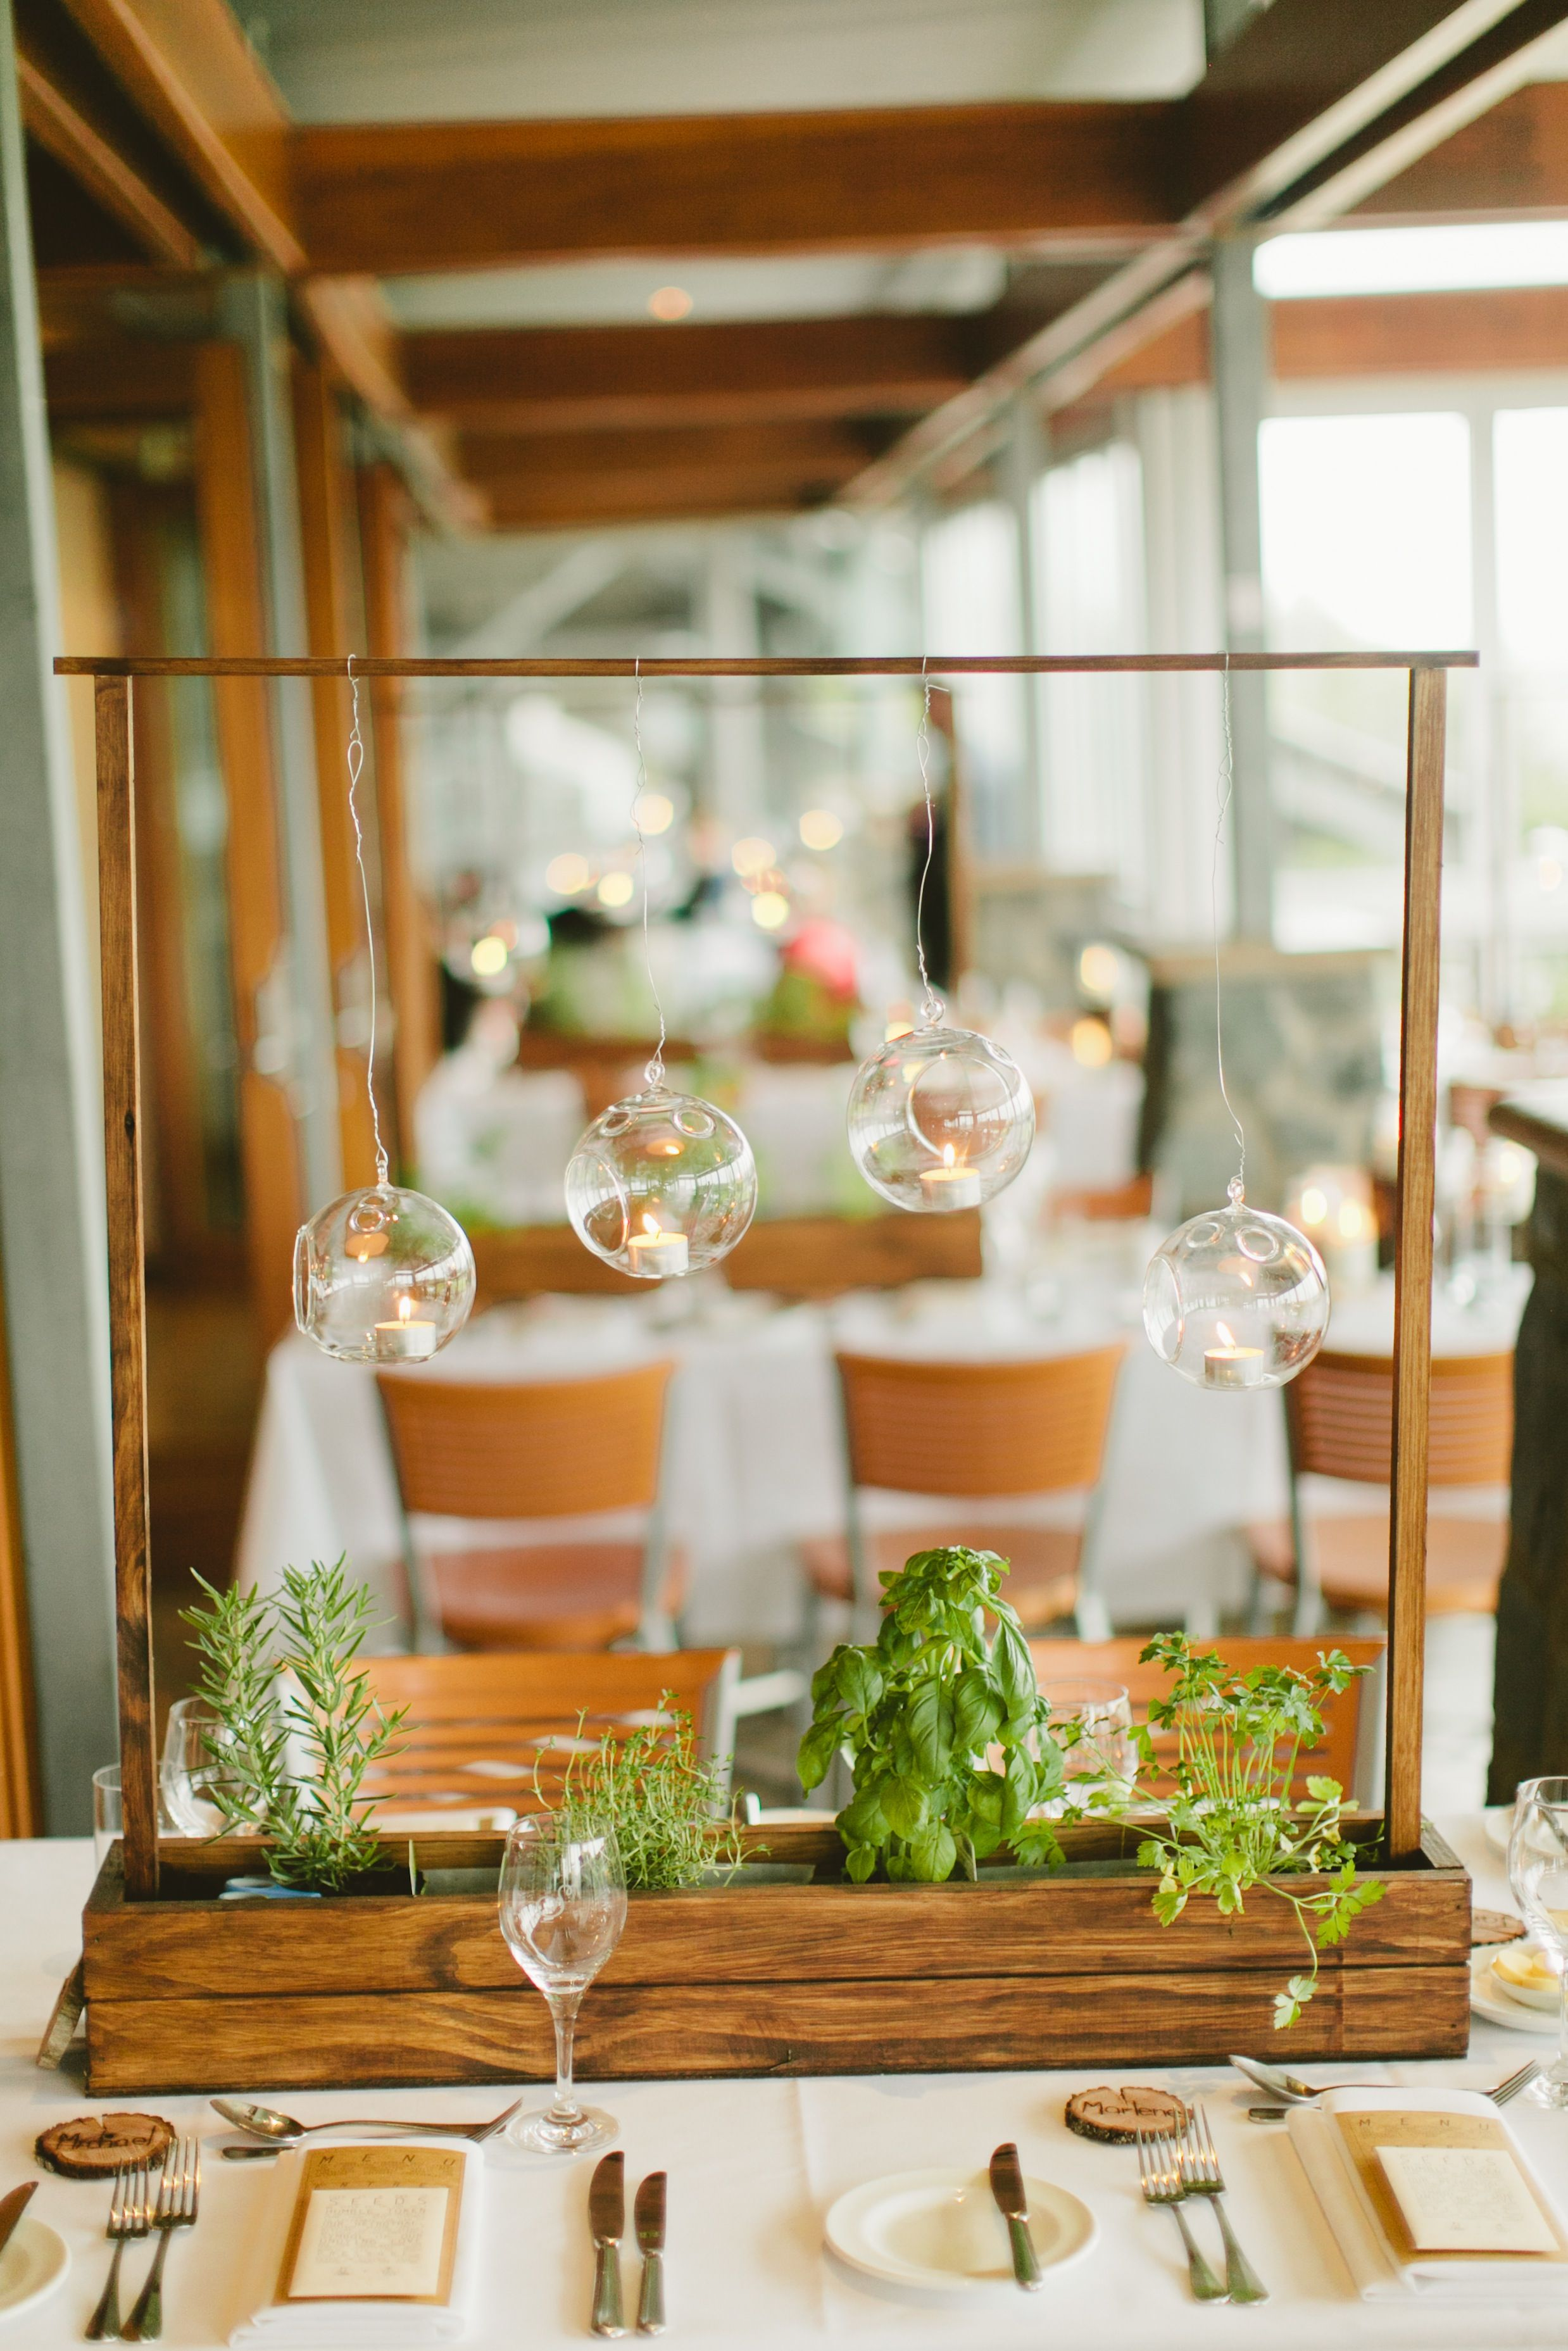 Whimsical lavender and green queensland wedding centre pieces herb garden table decorations organic shapes wood and glass love this planteropen windowtable decoration junglespirit Gallery